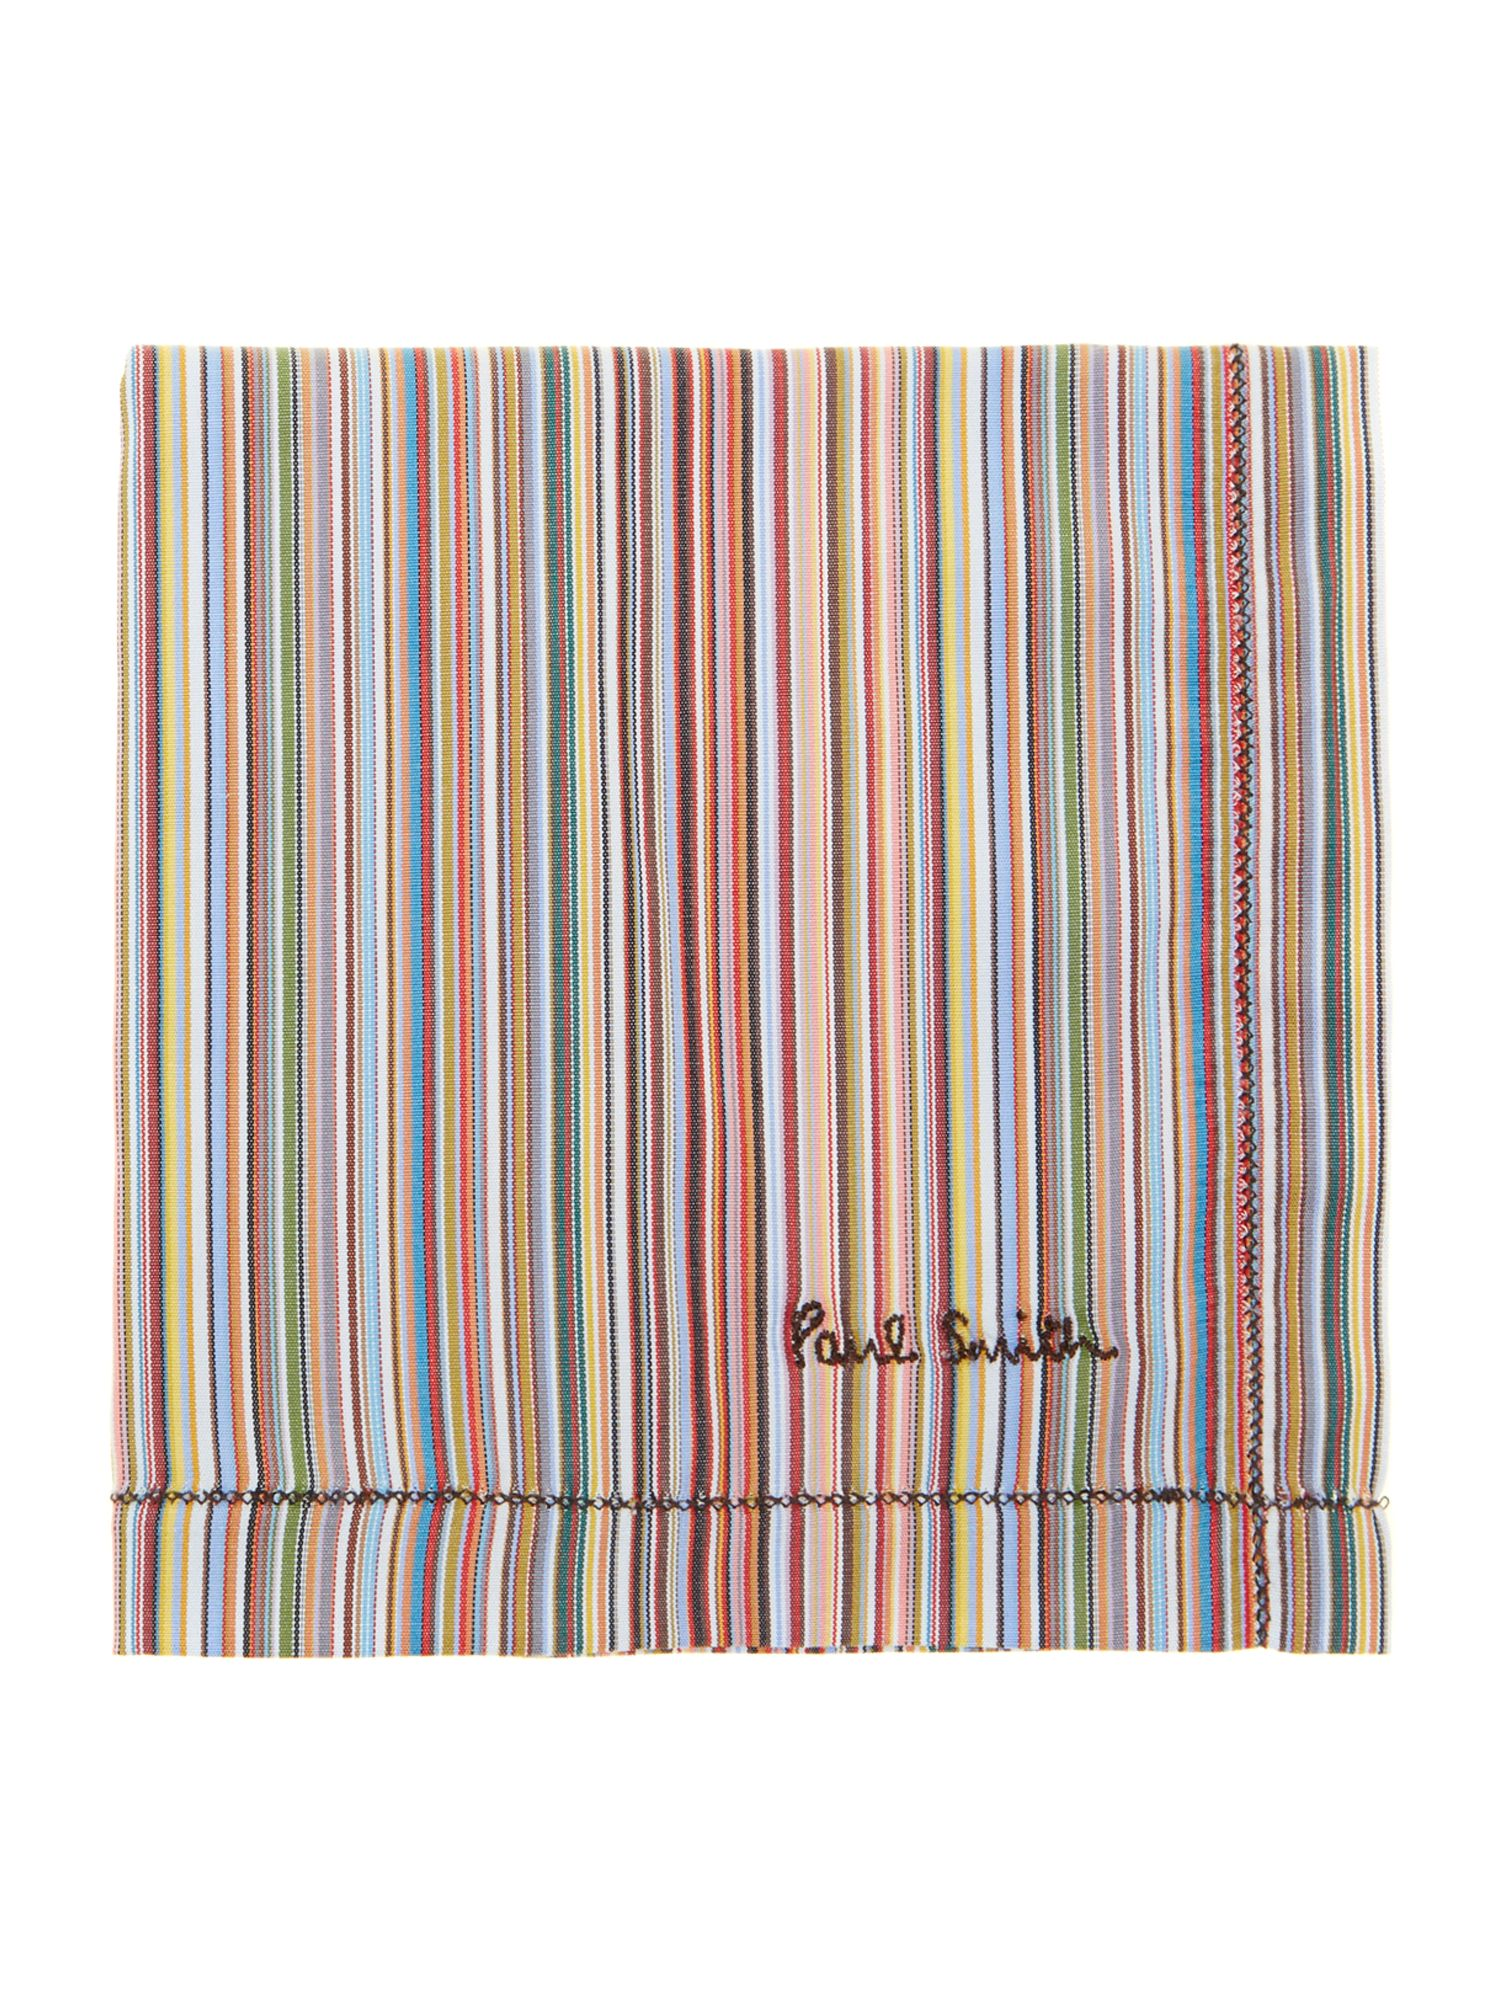 Paul Smith stripe pocket square